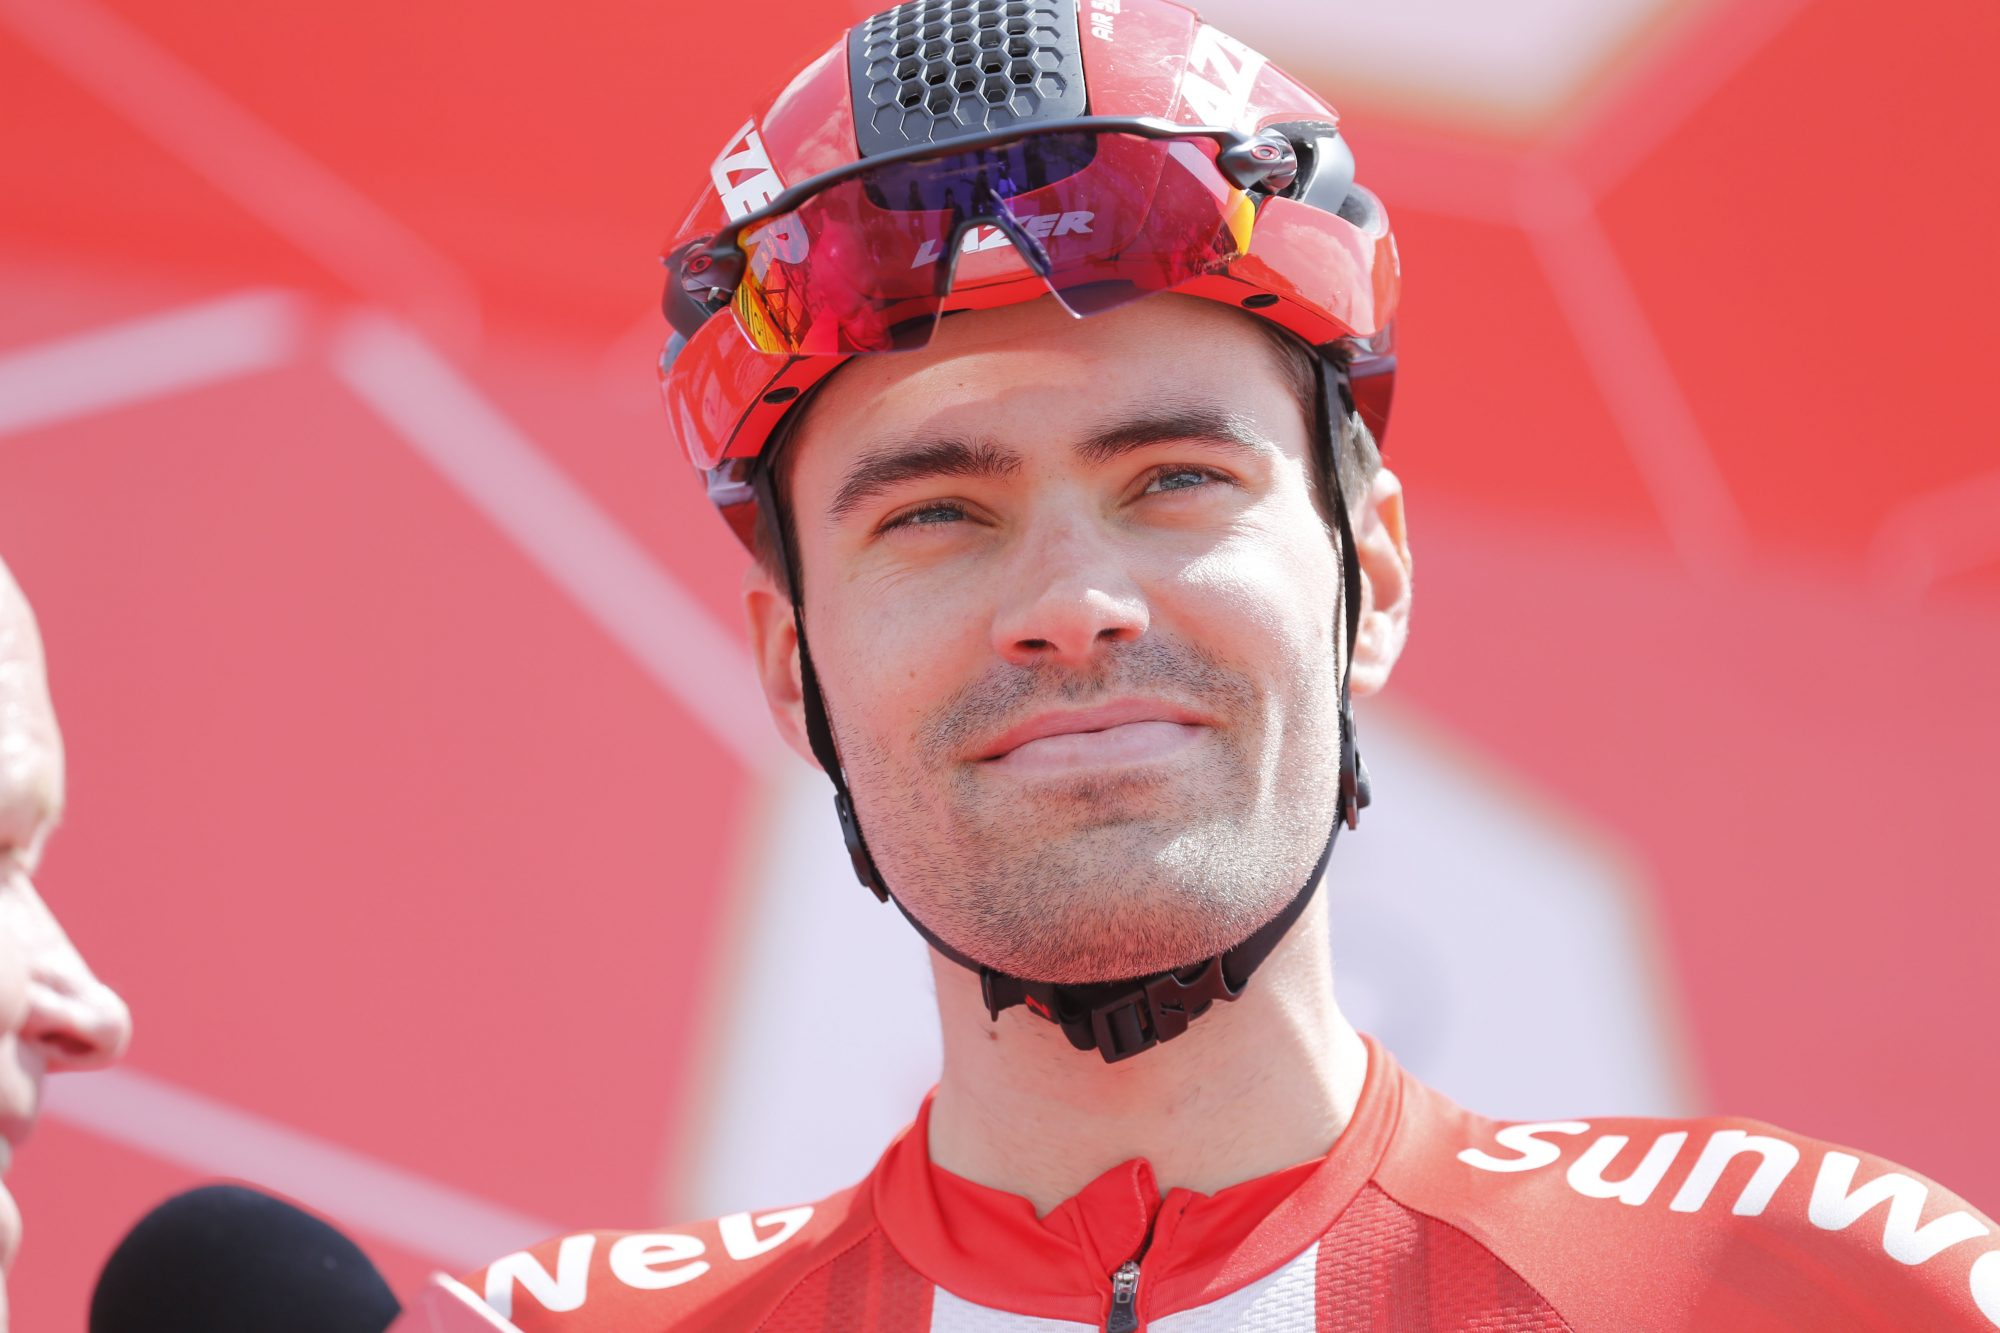 Team Sunweb and Tom Dumoulin end contract early